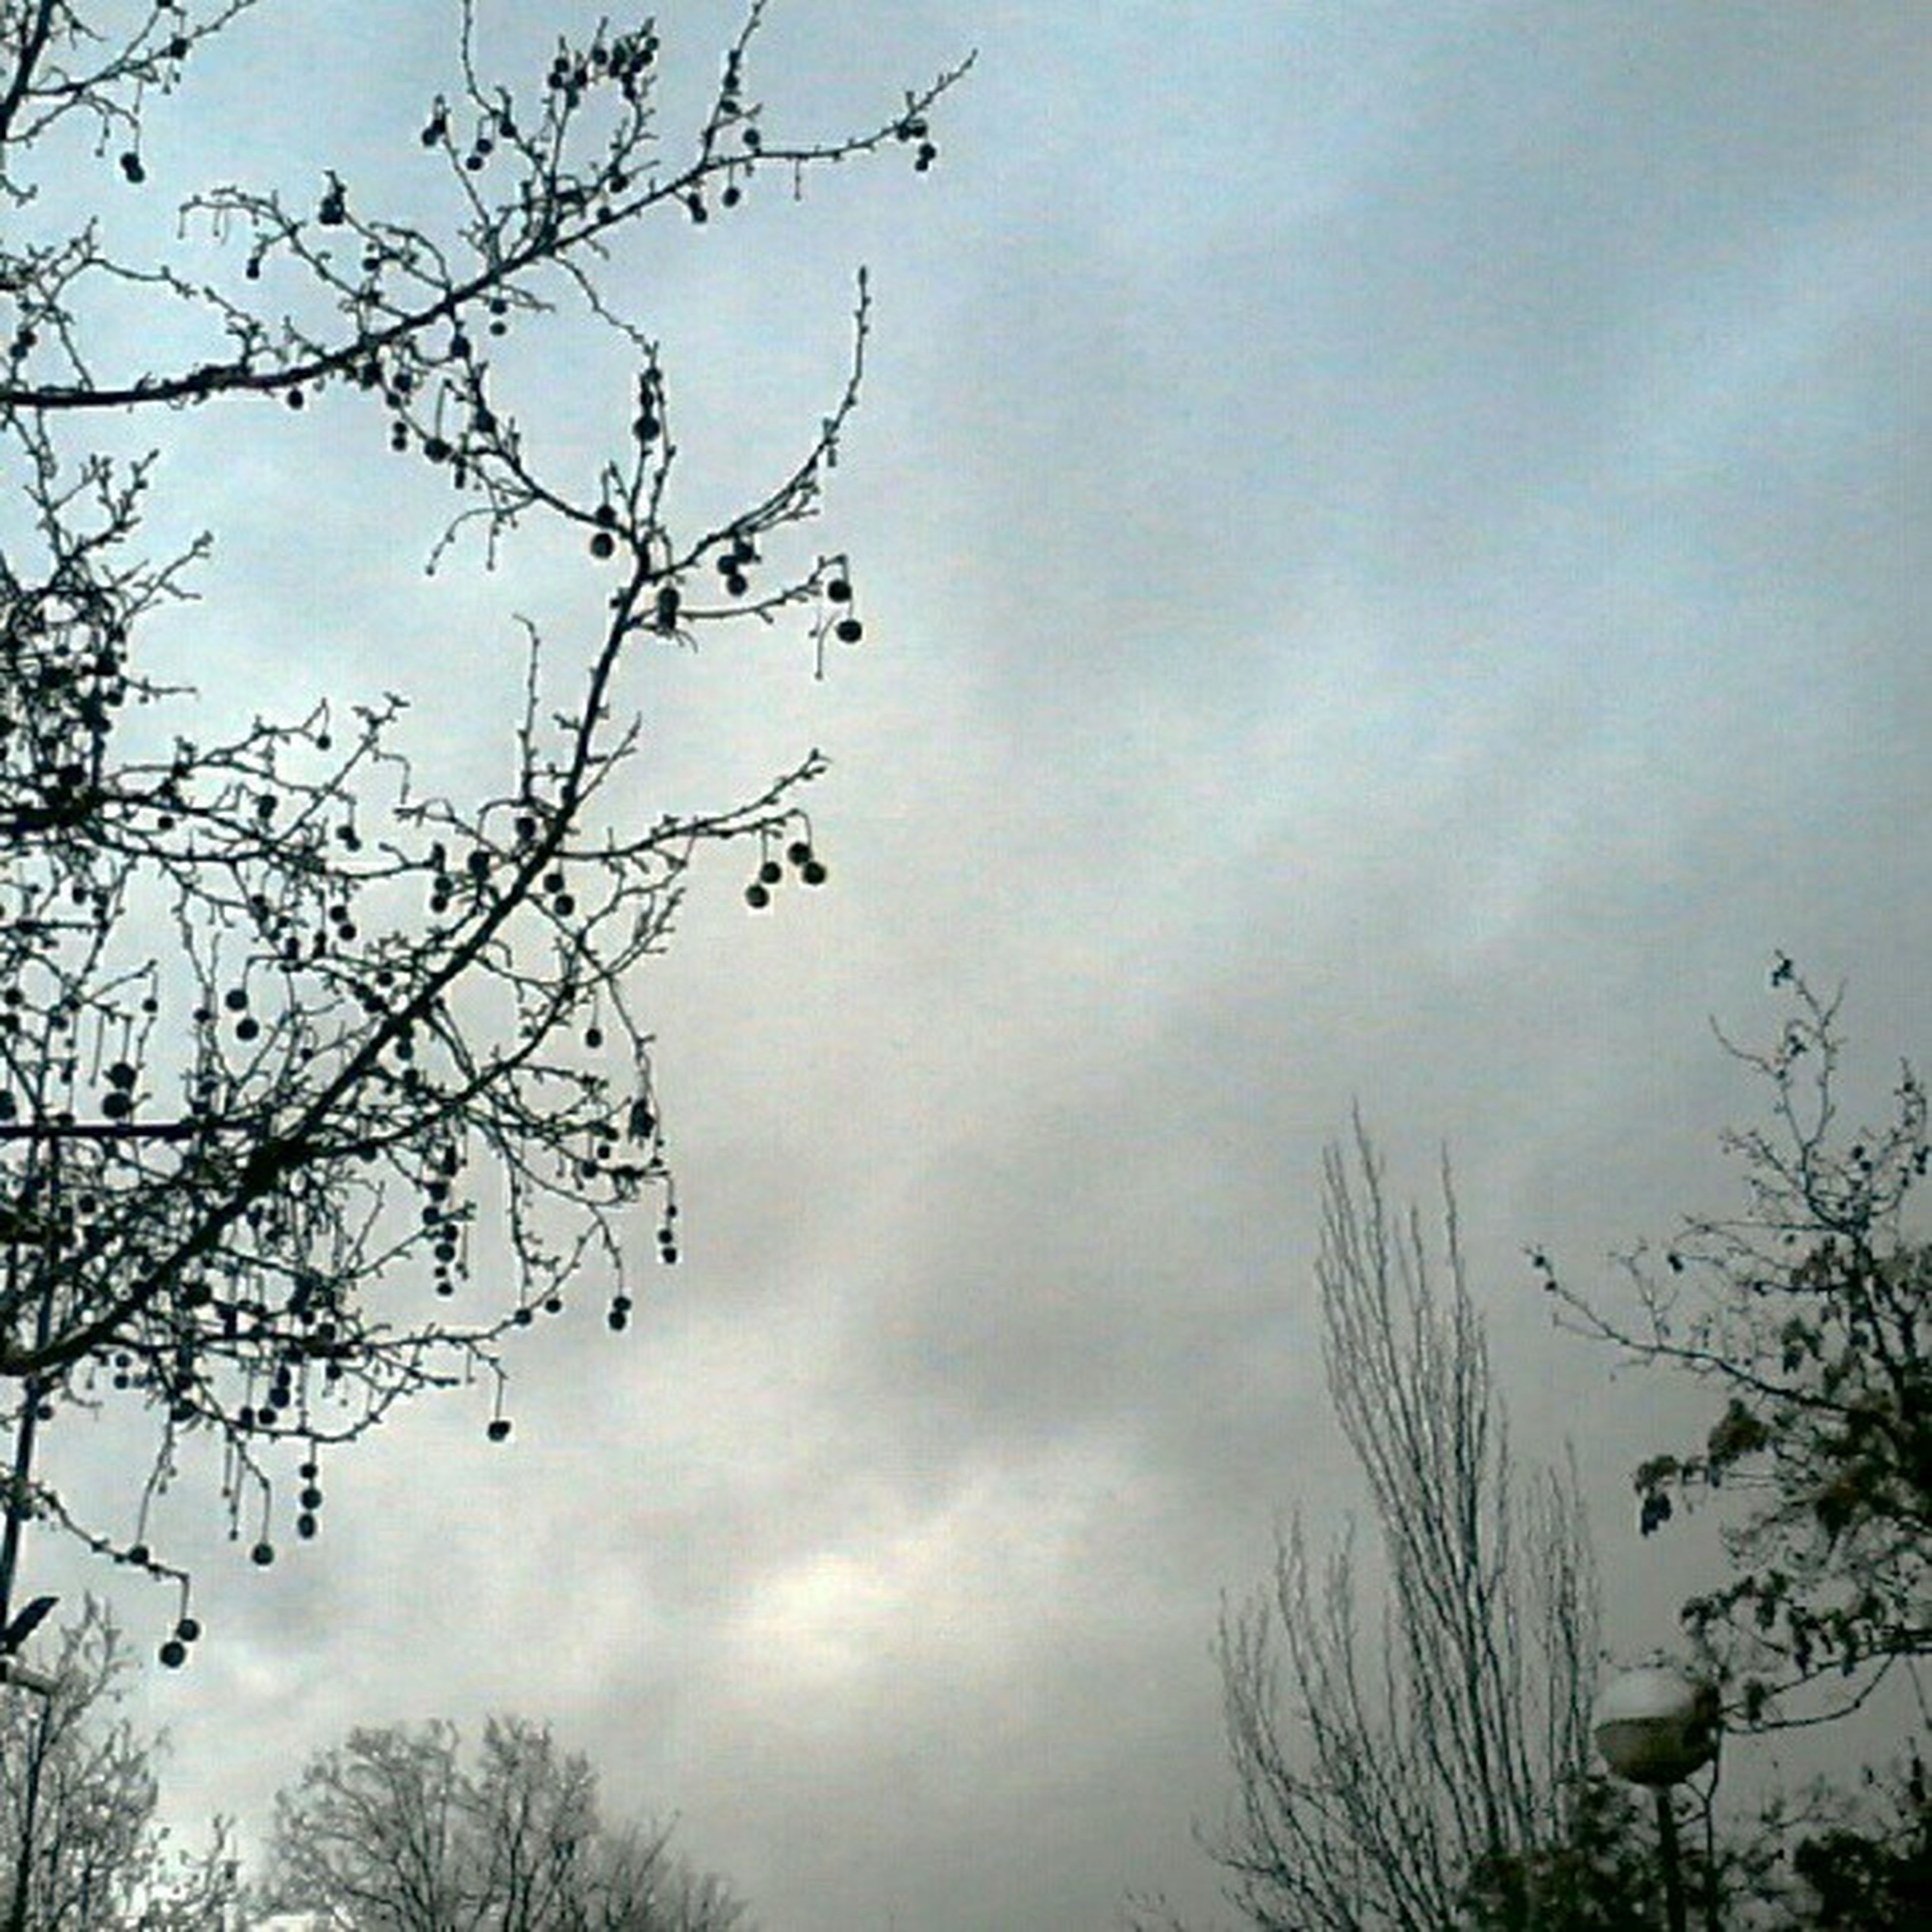 sky, low angle view, tree, branch, cloud - sky, bare tree, tranquility, nature, beauty in nature, cloudy, scenics, growth, silhouette, tranquil scene, cloud, outdoors, overcast, weather, no people, dusk